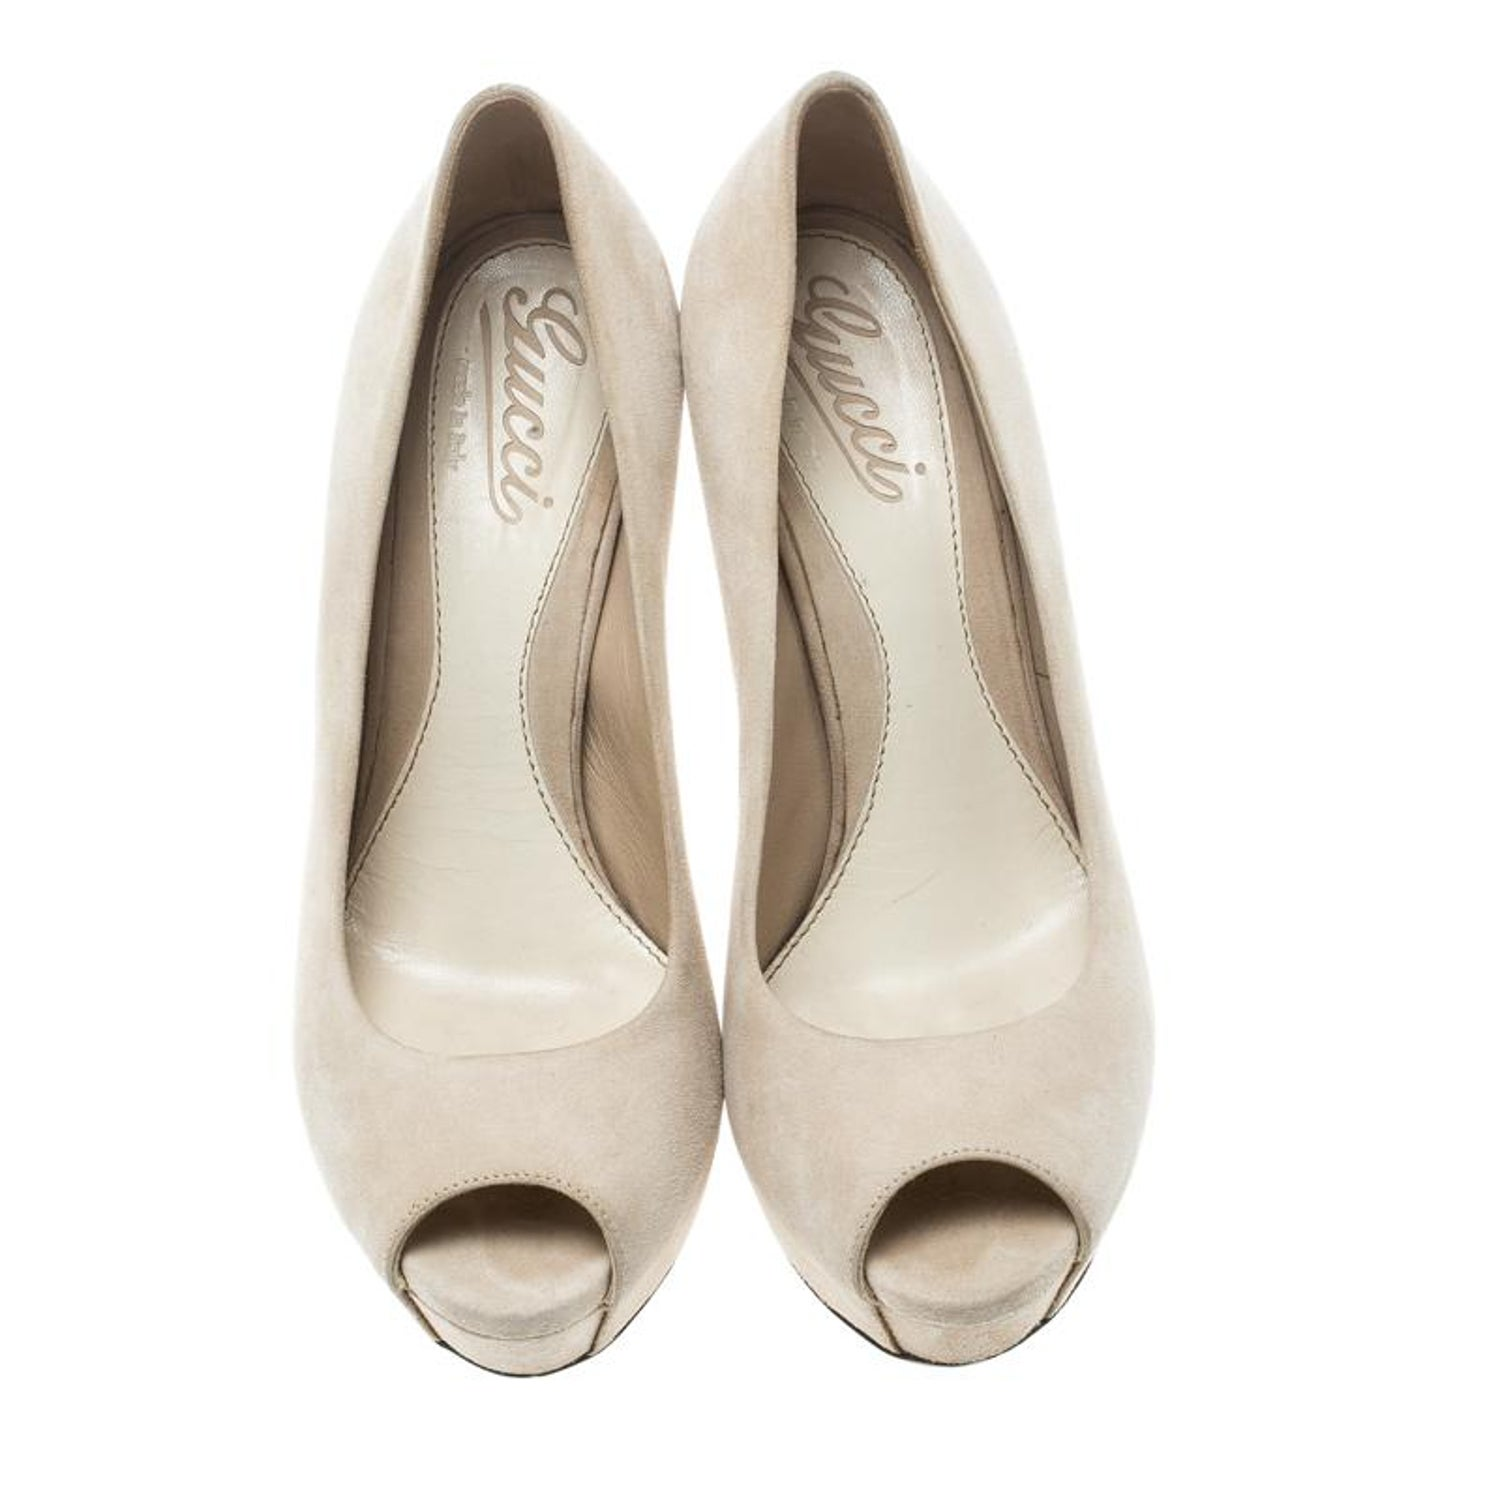 f25407a4e Gucci Beige Suede Sofia Peep Toe Platform Pumps Size 37 For Sale at 1stdibs